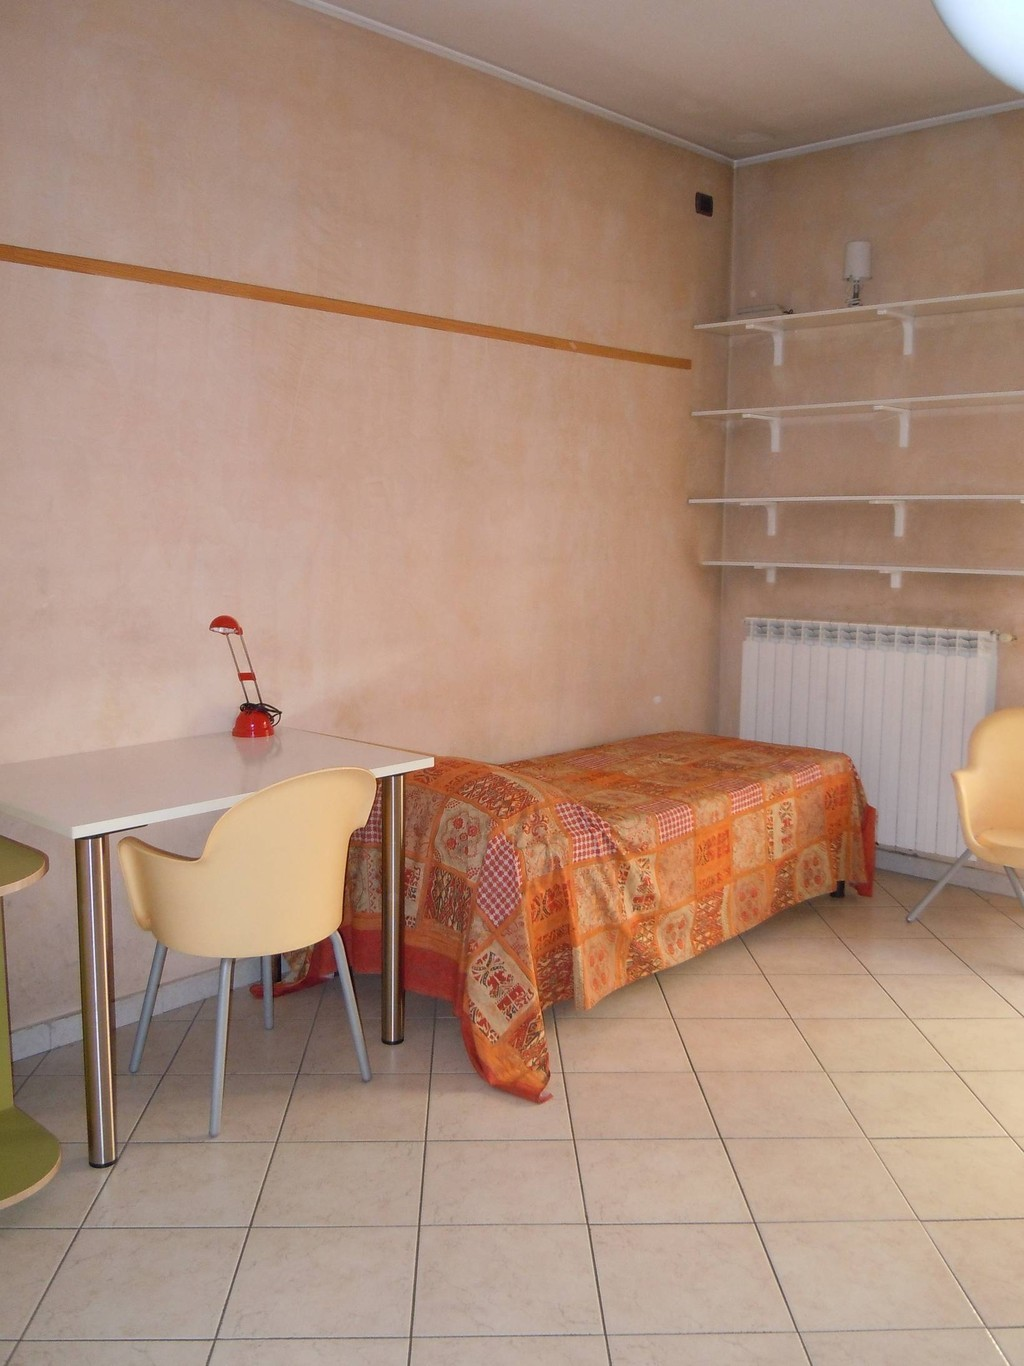 bed-double-room-bovisa-milan-erasmus-girl-697c8a2b0be8f2fb470a980689b4d838